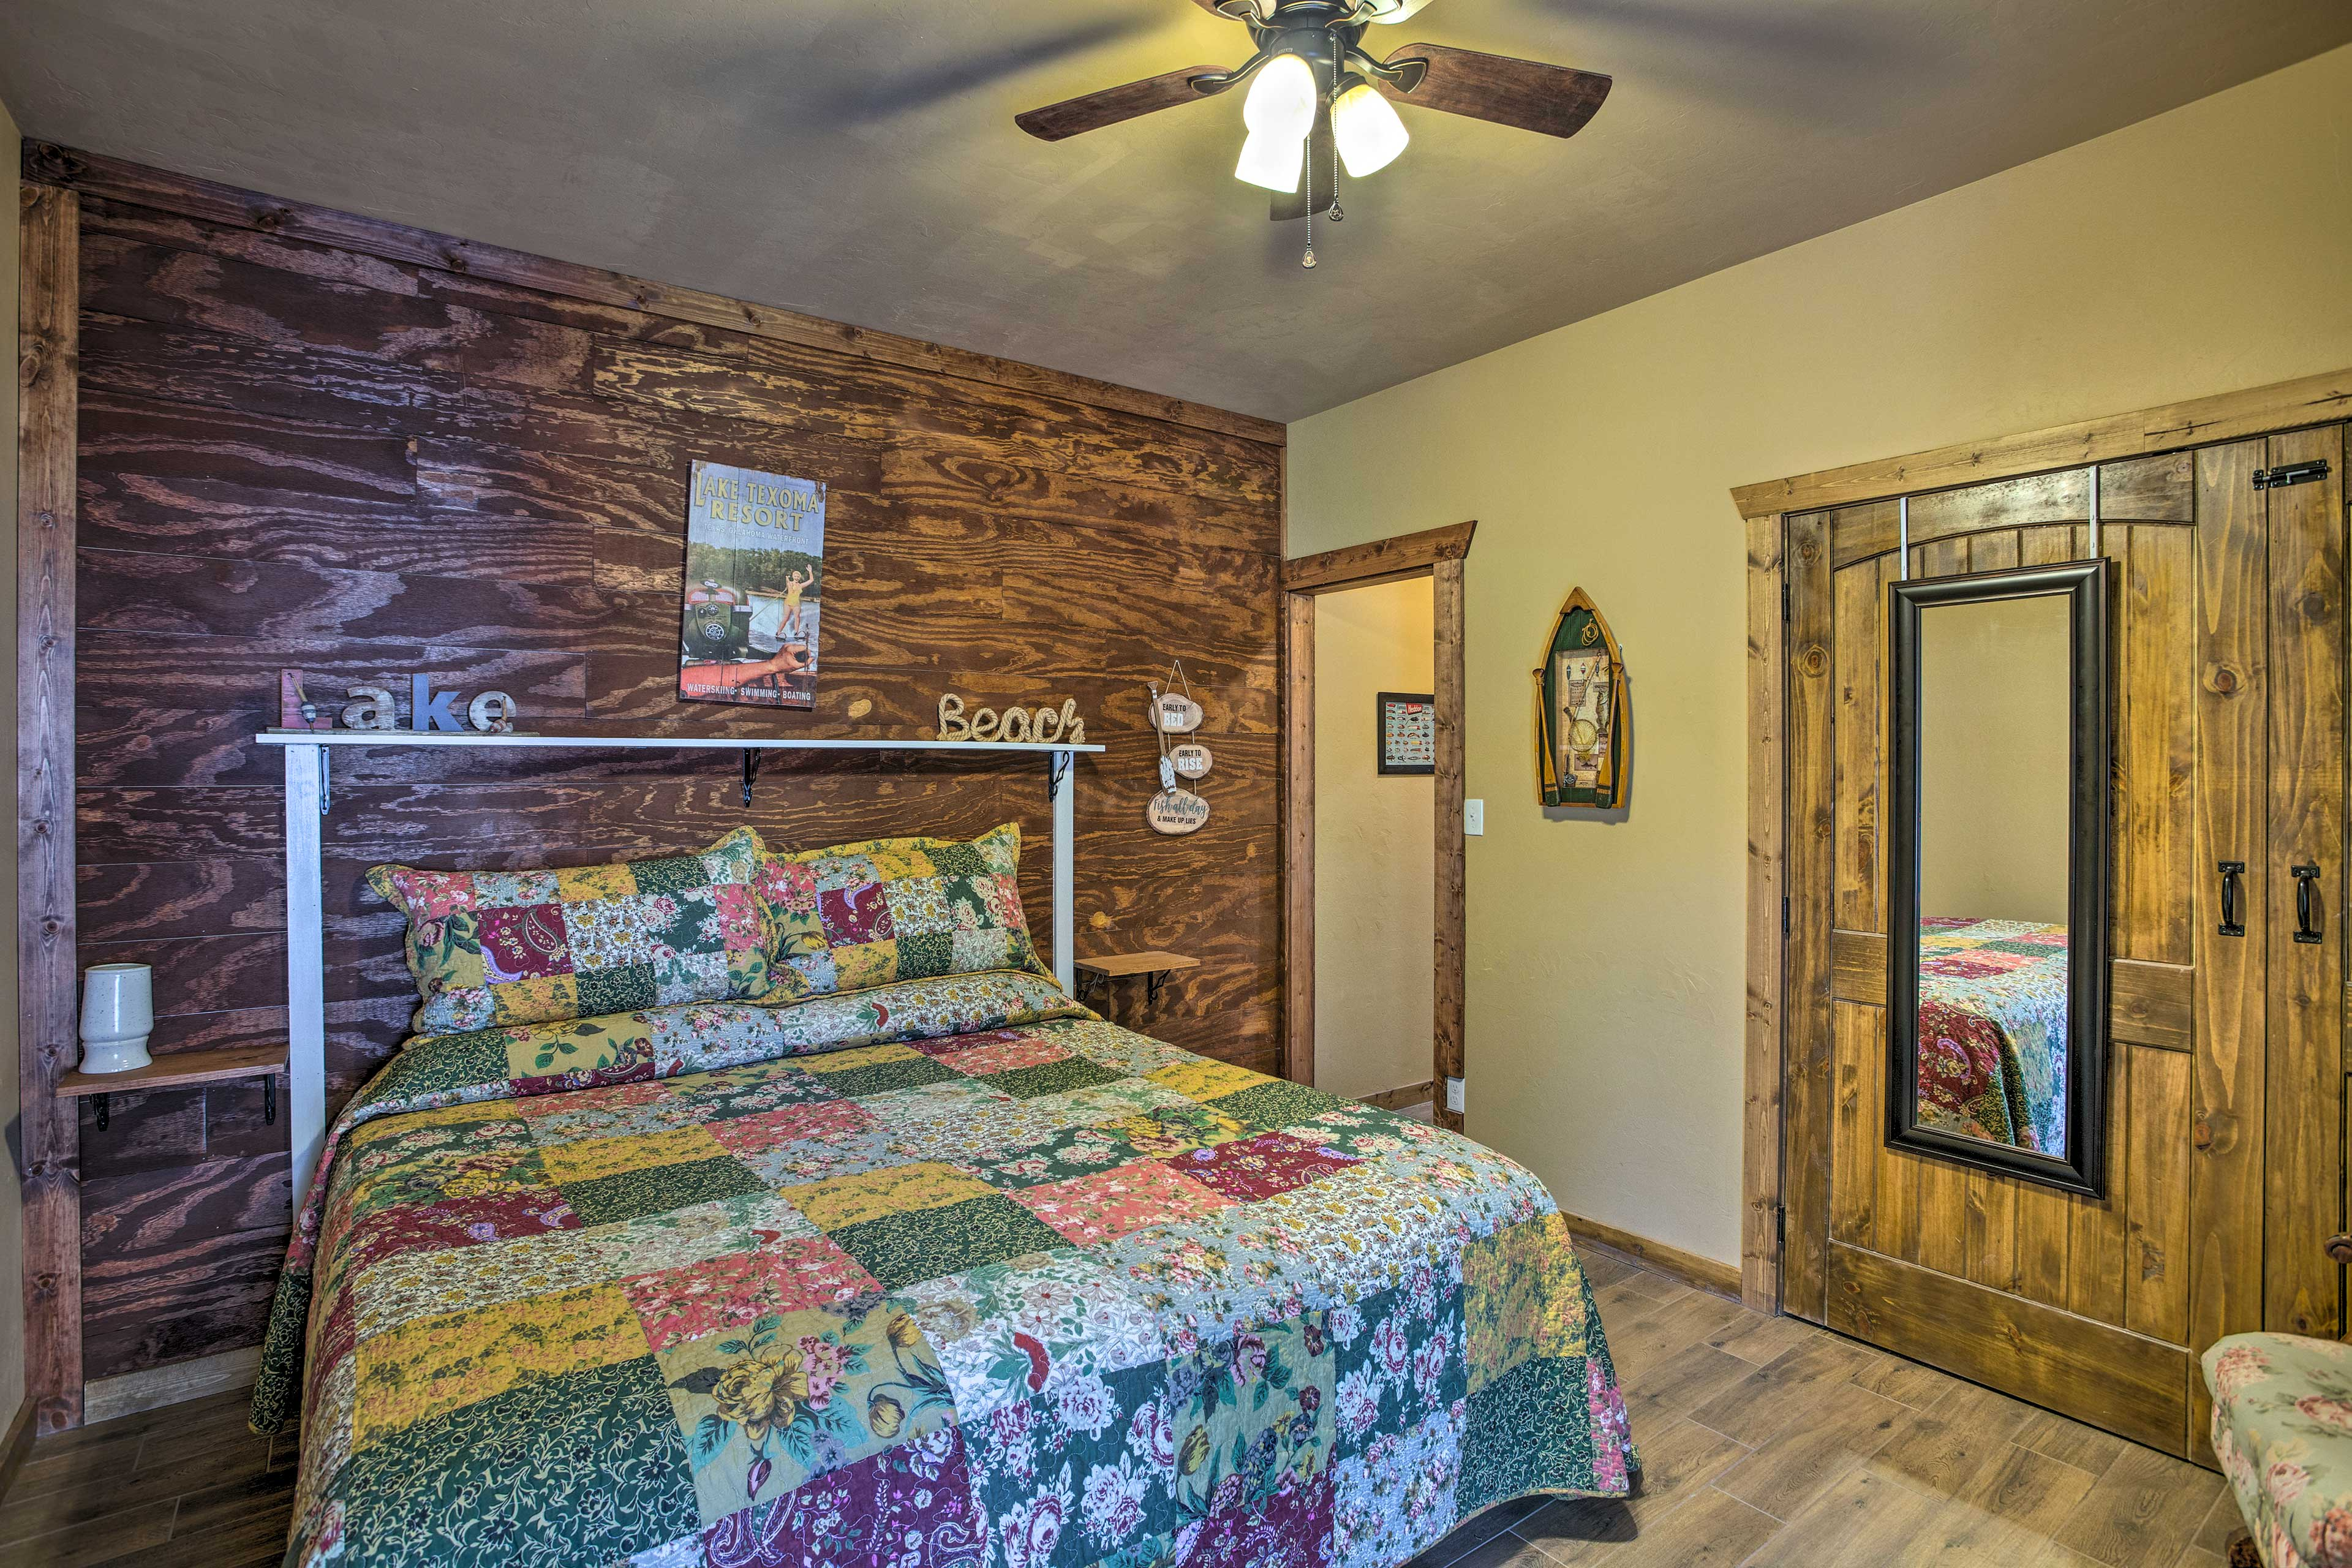 A second master bedroom can be found downstairs.